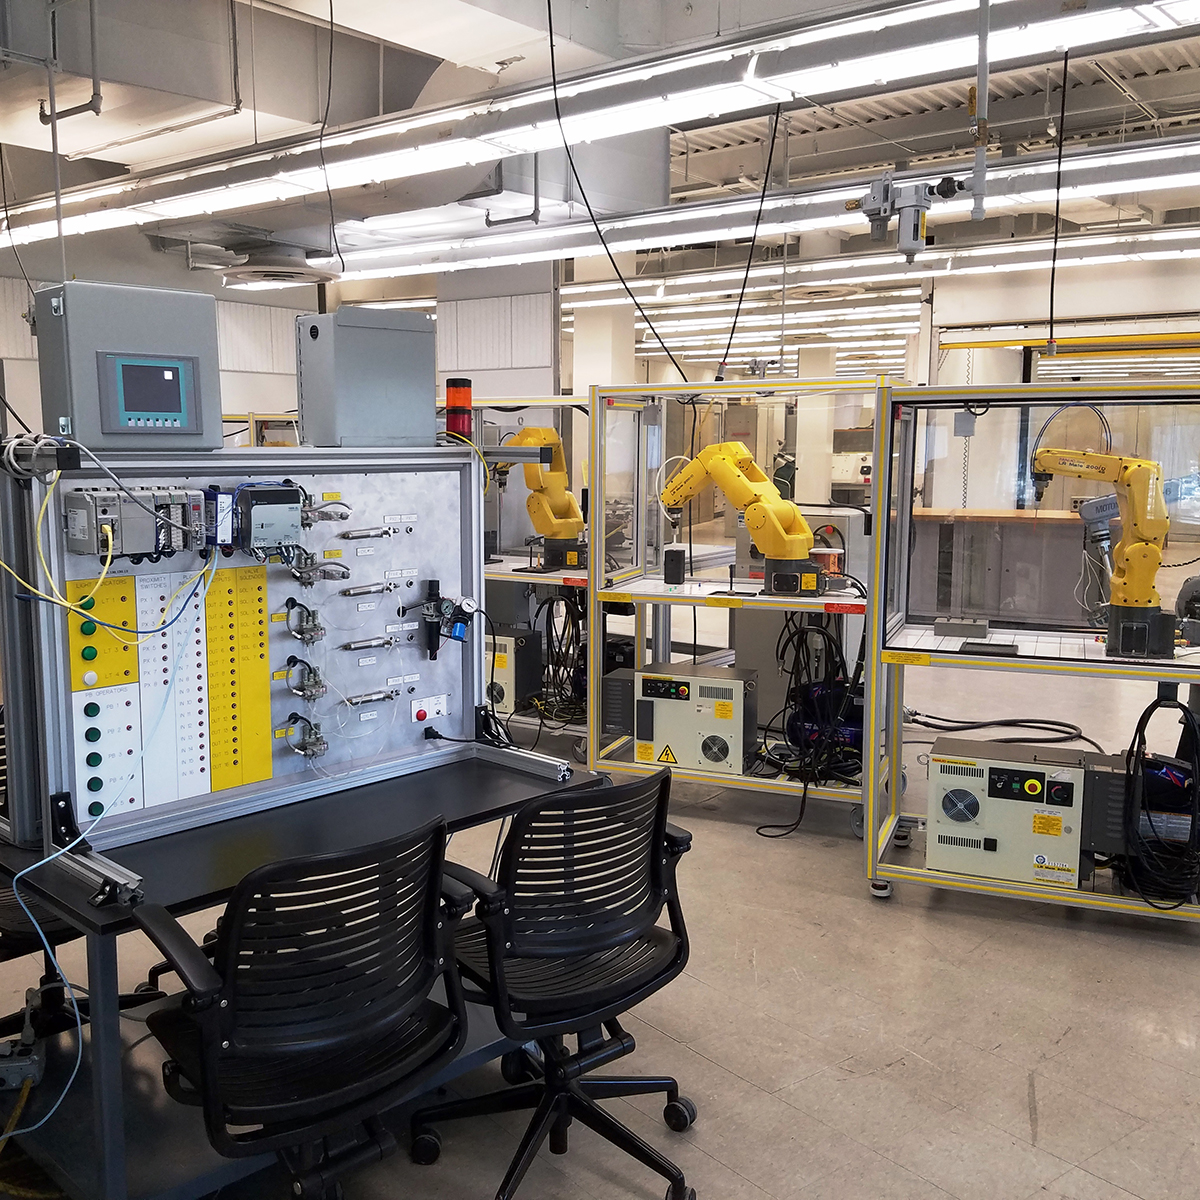 Photograph of the inside of a lab with fanuc robots and other machinery